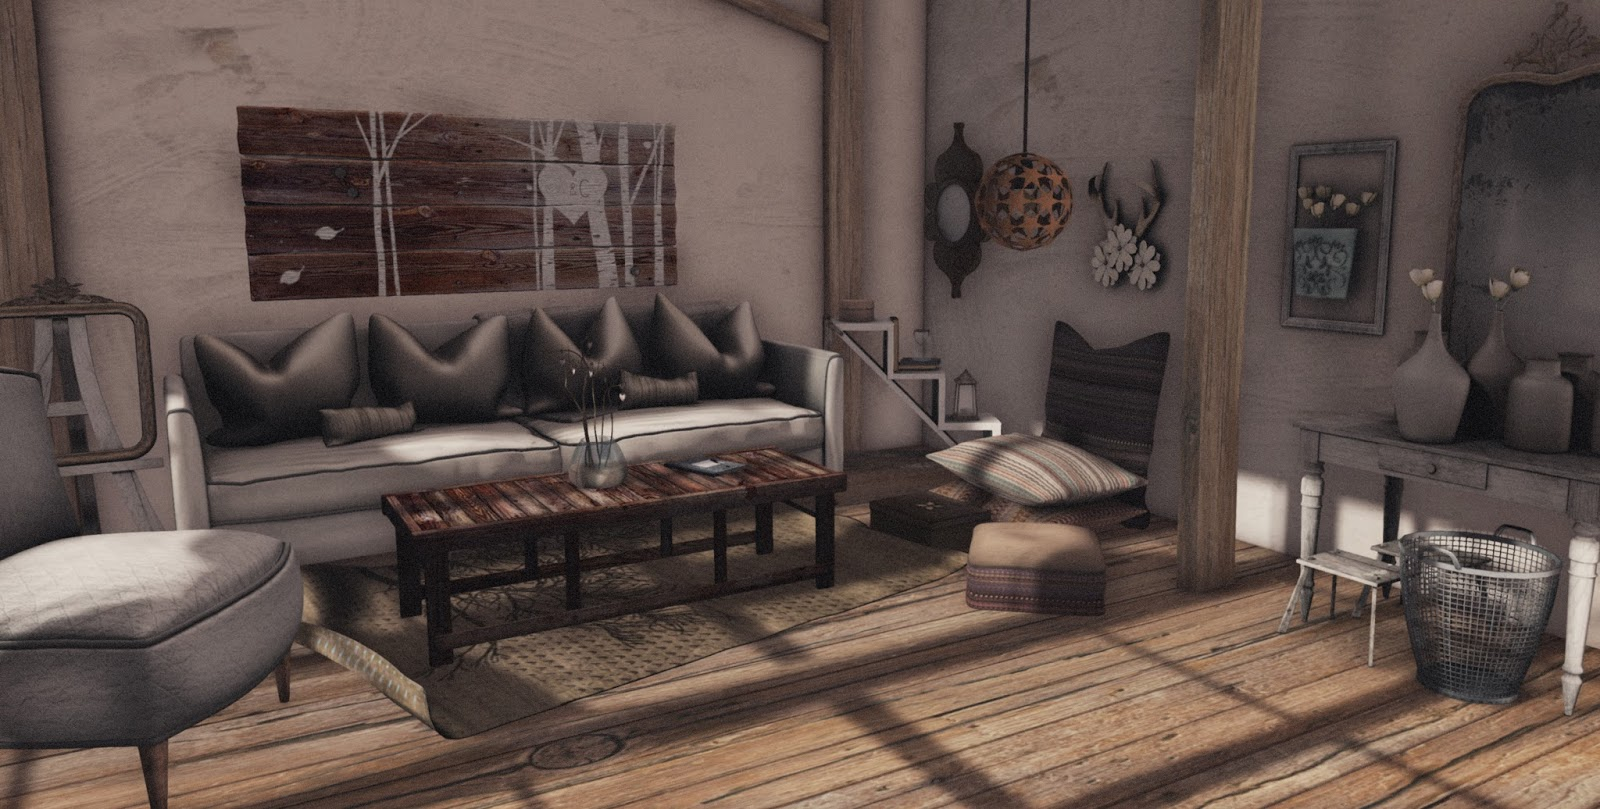 The second life of a shabby couch